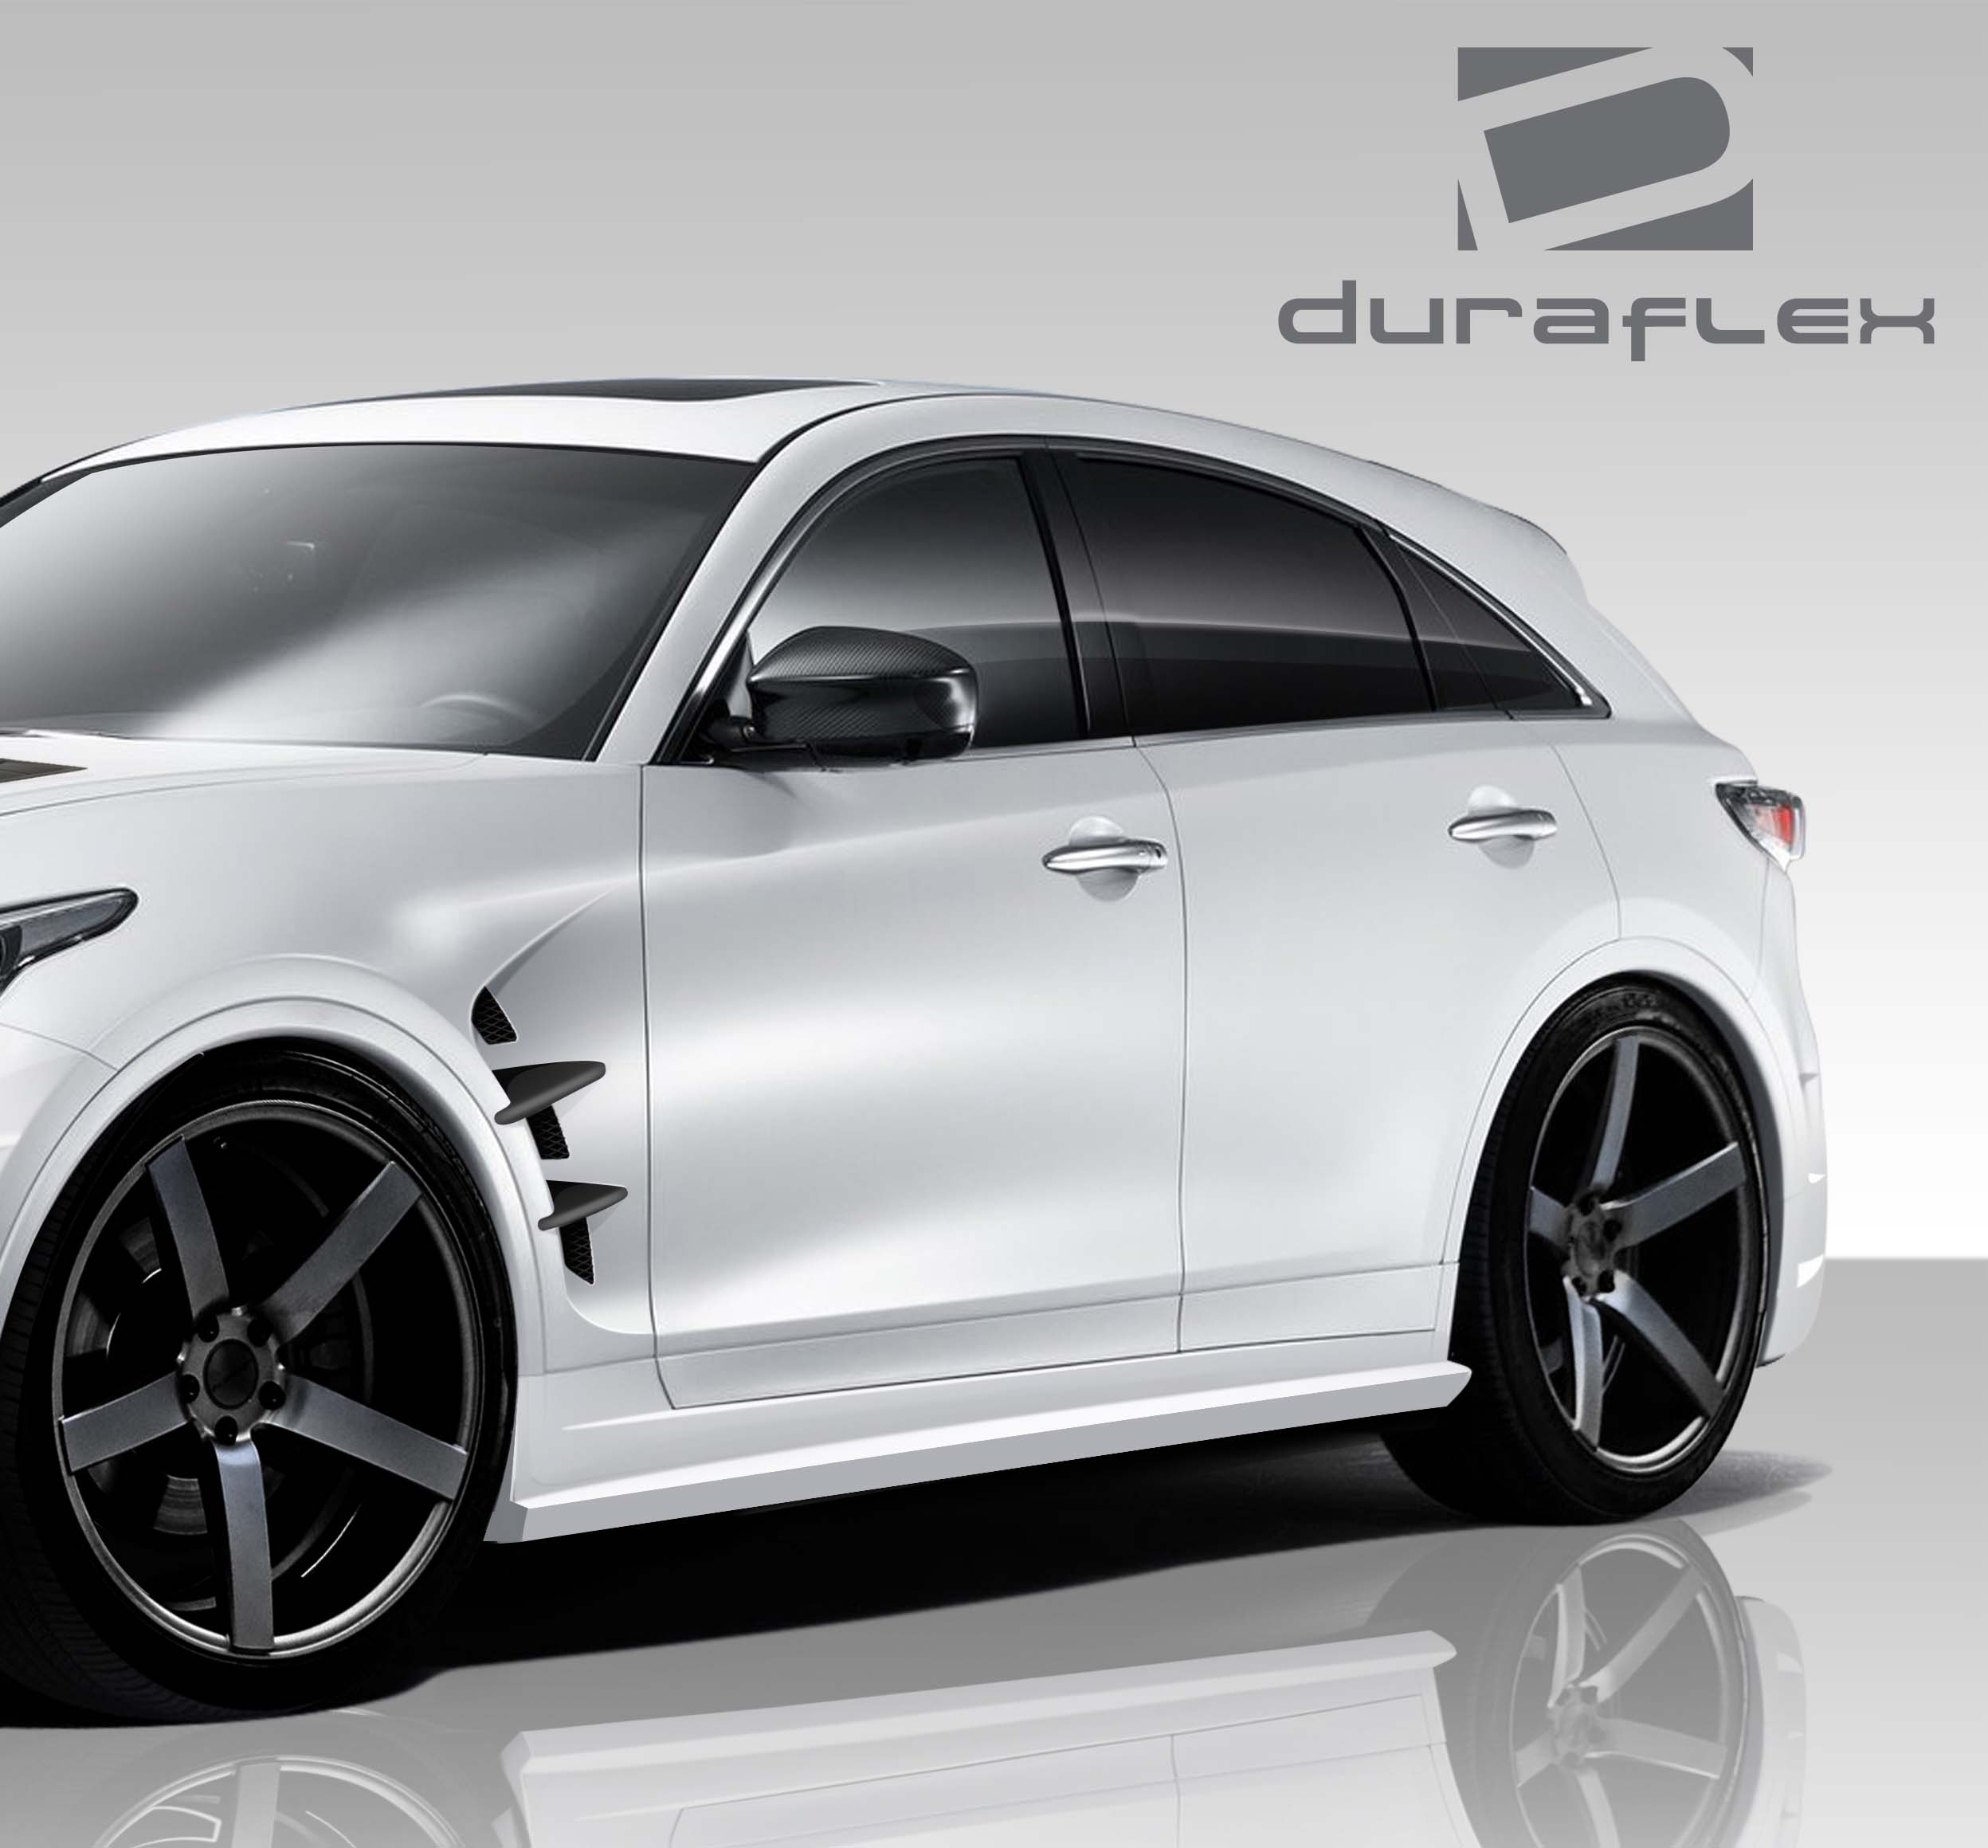 Extreme dimensions 2009 2014 infiniti fx qx70 couture mz s rear extreme dimensions 2009 2014 infiniti fx qx70 duraflex ct r hood 1 piece vanachro Image collections